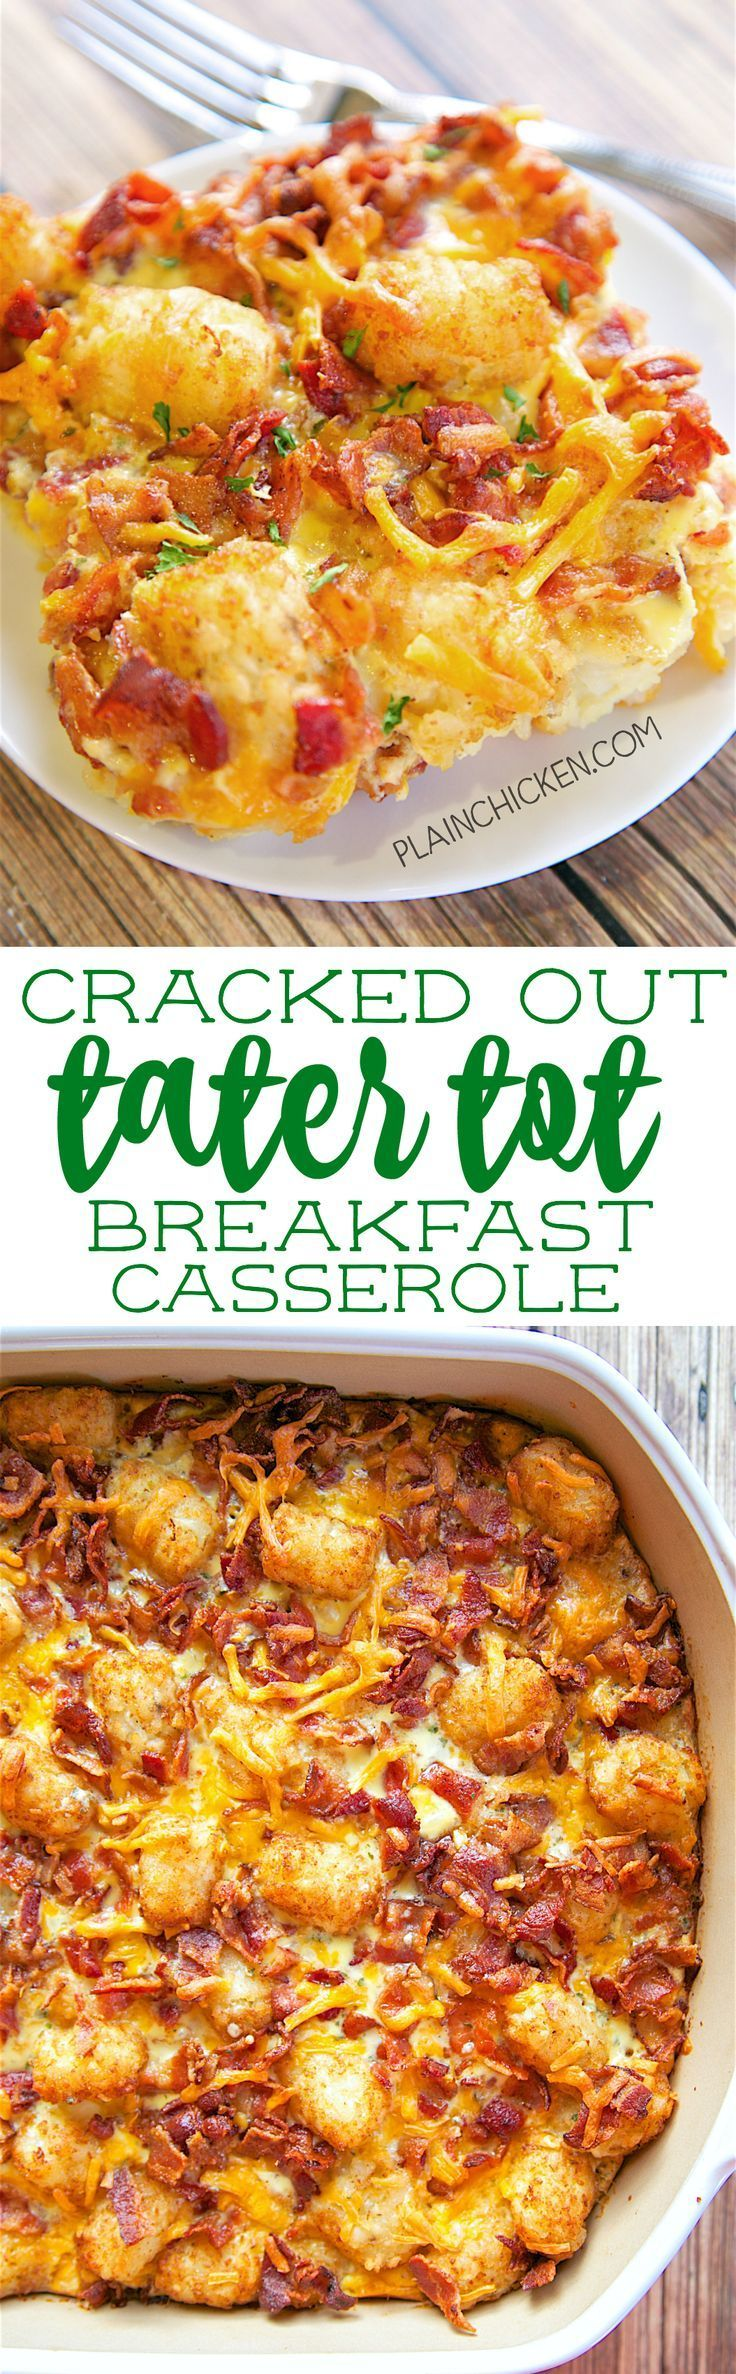 Cracked Out Tater Tot Breakfast Casserole - great make ahead recipe! Only 6 ingredients!! Bacon, cheddar cheese, tater tots, eggs, milk, Ranch mix. Can refrigerate or freeze for later. Great for breakfast. lunch or dinner. Everyone loves this easy breakfa See more http://recipesheaven.com/paleo